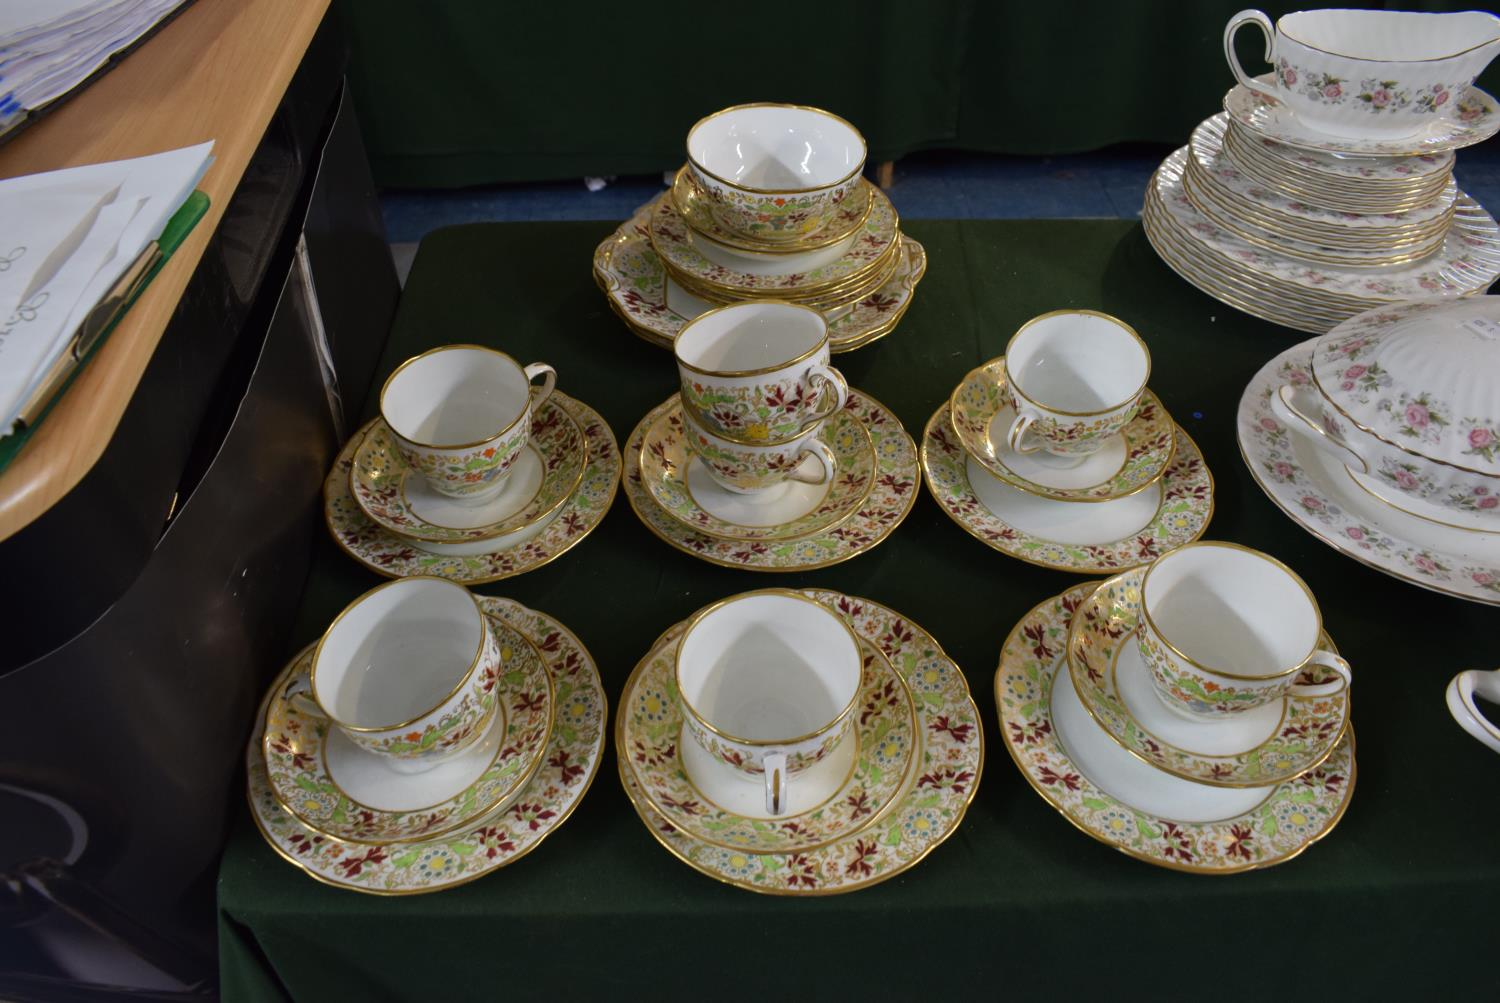 Lot 222 - A Collection of Hammersley Floral Pattern Teawares to Include Seven Trios, Two Cake Plates,